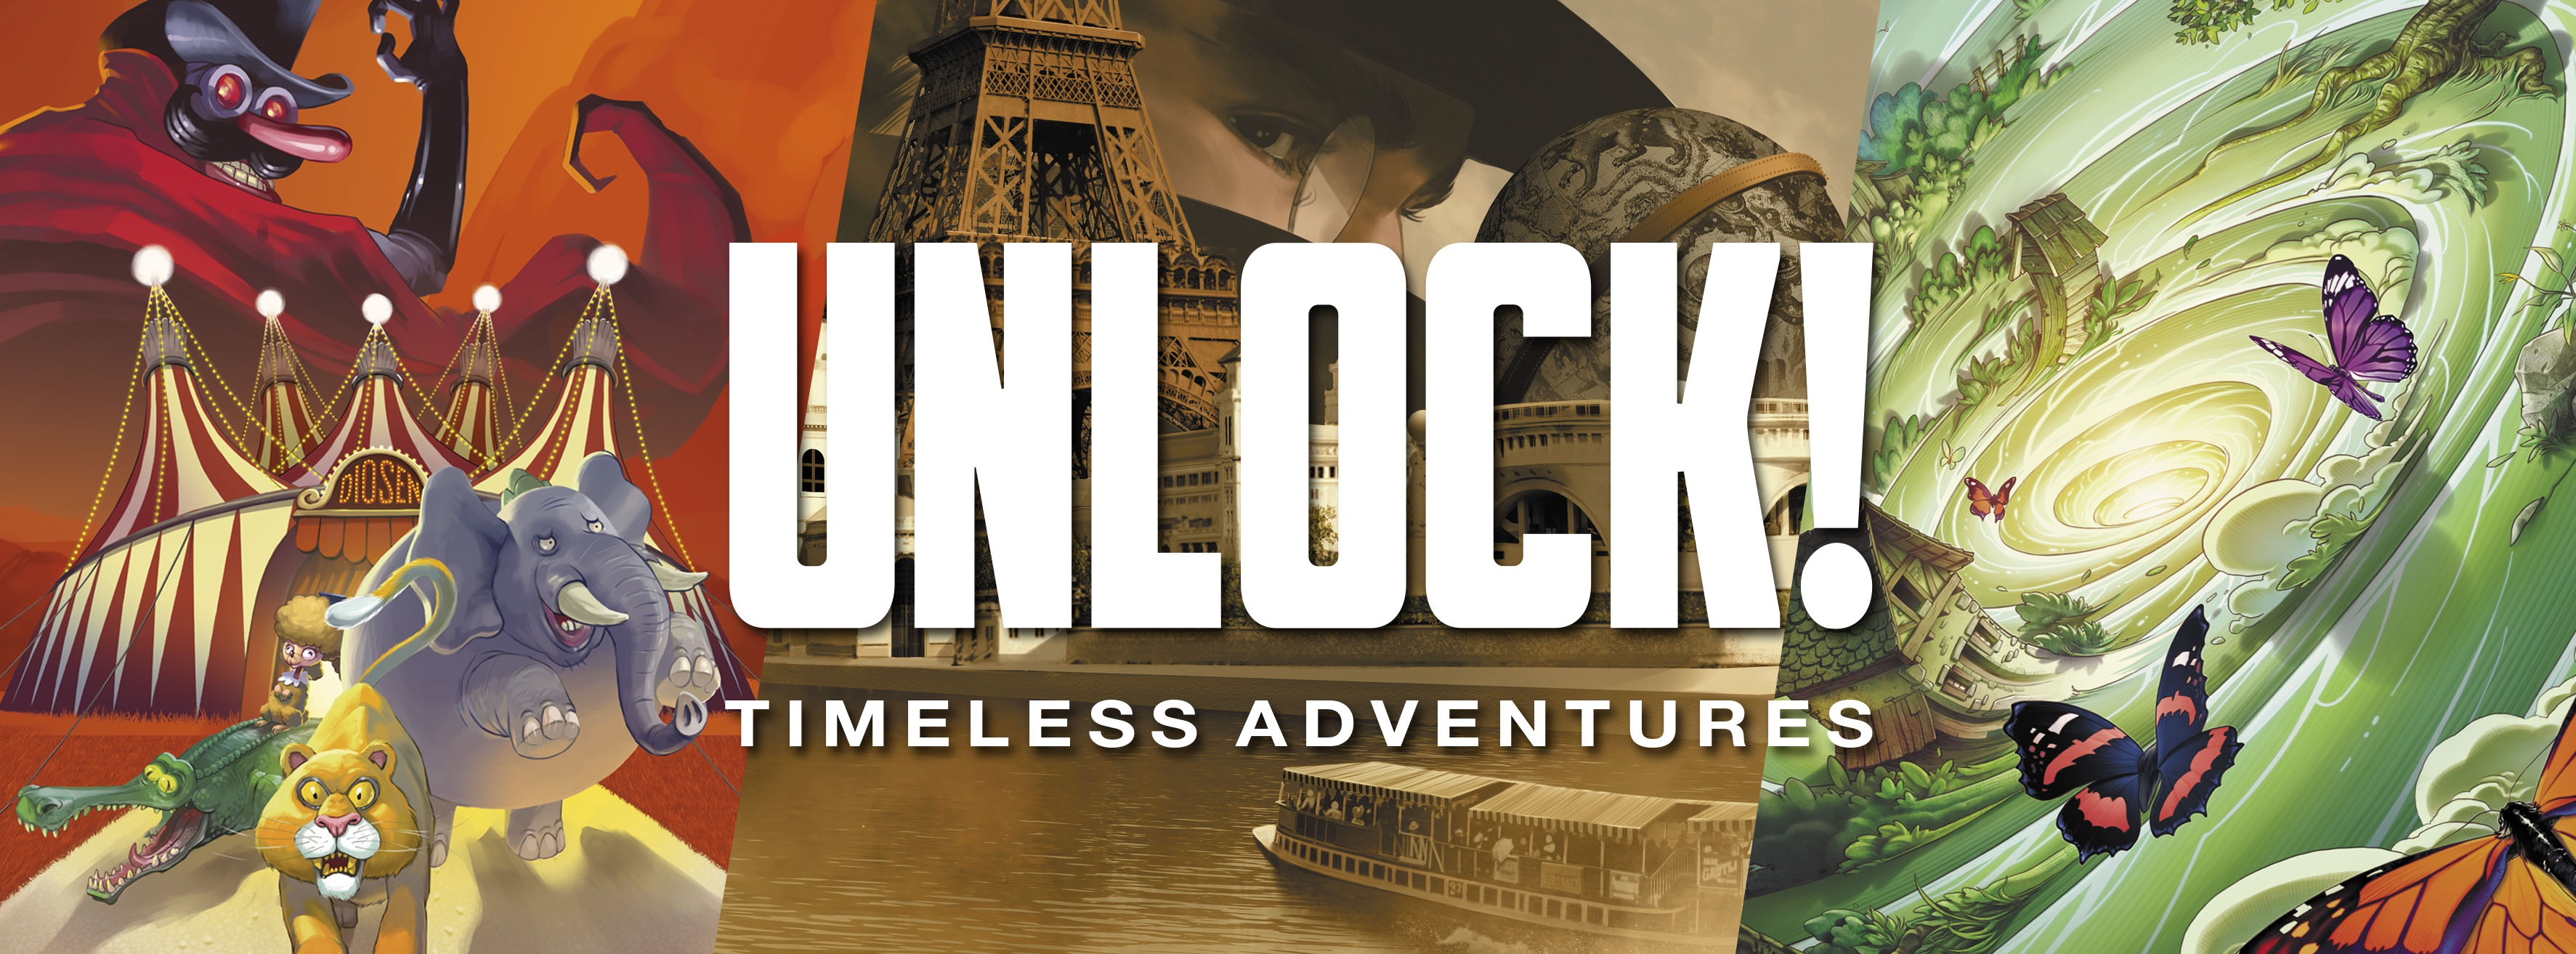 Unlock! : Timeless Adventures